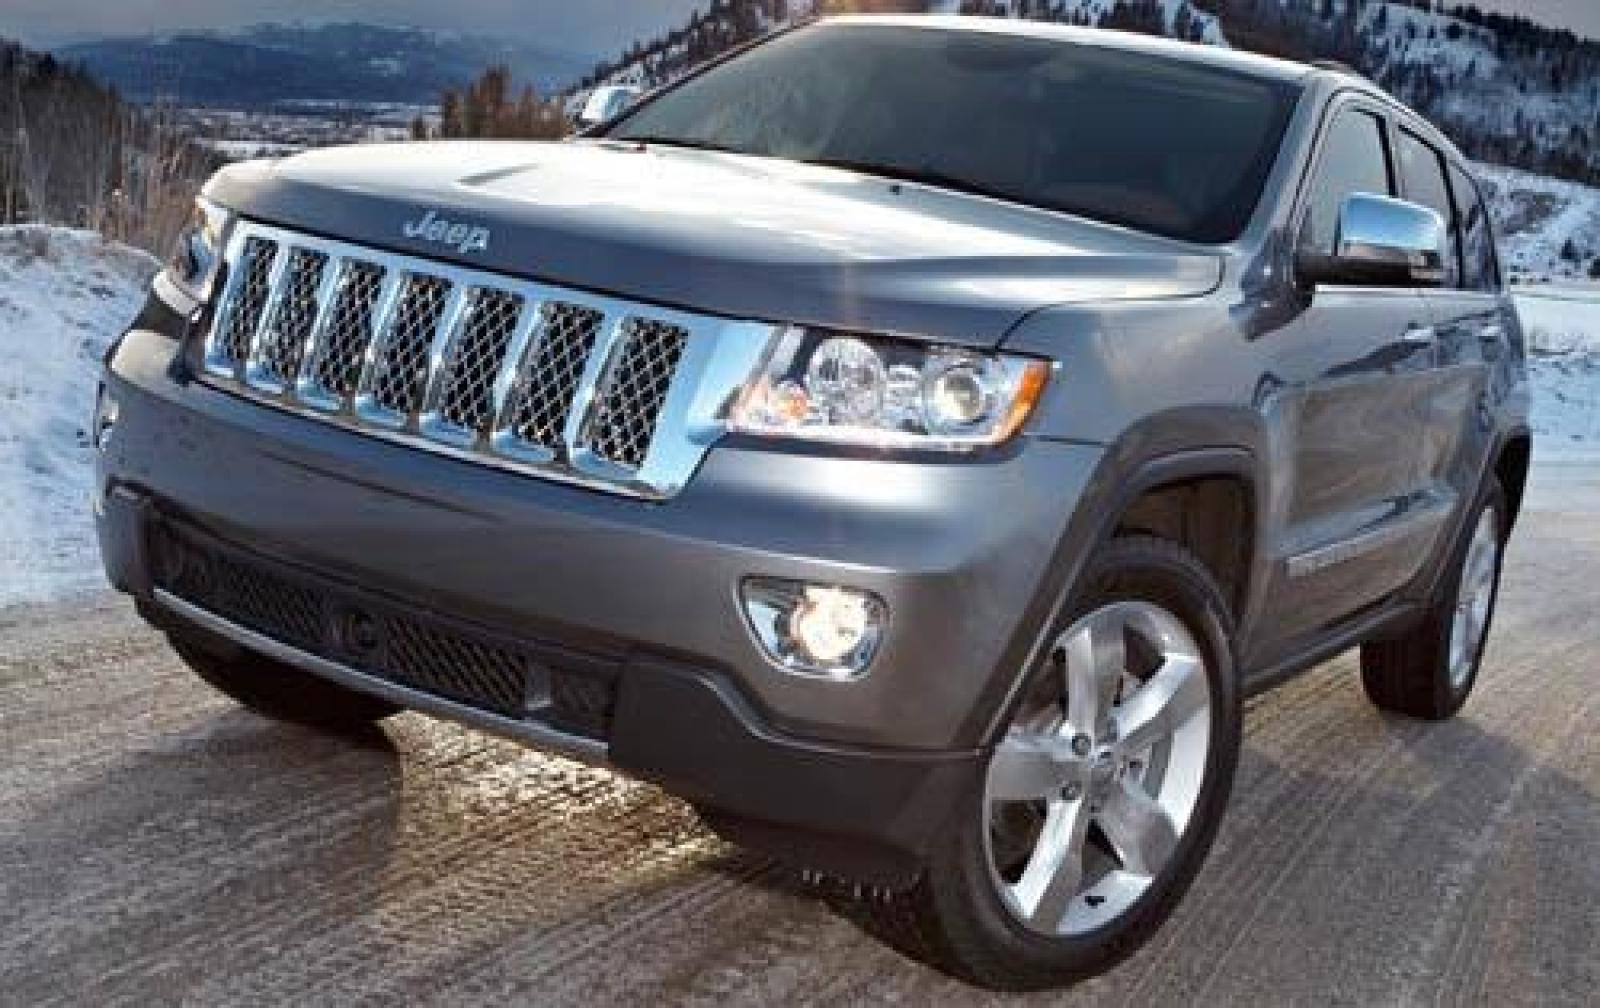 2011 jeep grand cherokee information and photos zombiedrive. Black Bedroom Furniture Sets. Home Design Ideas